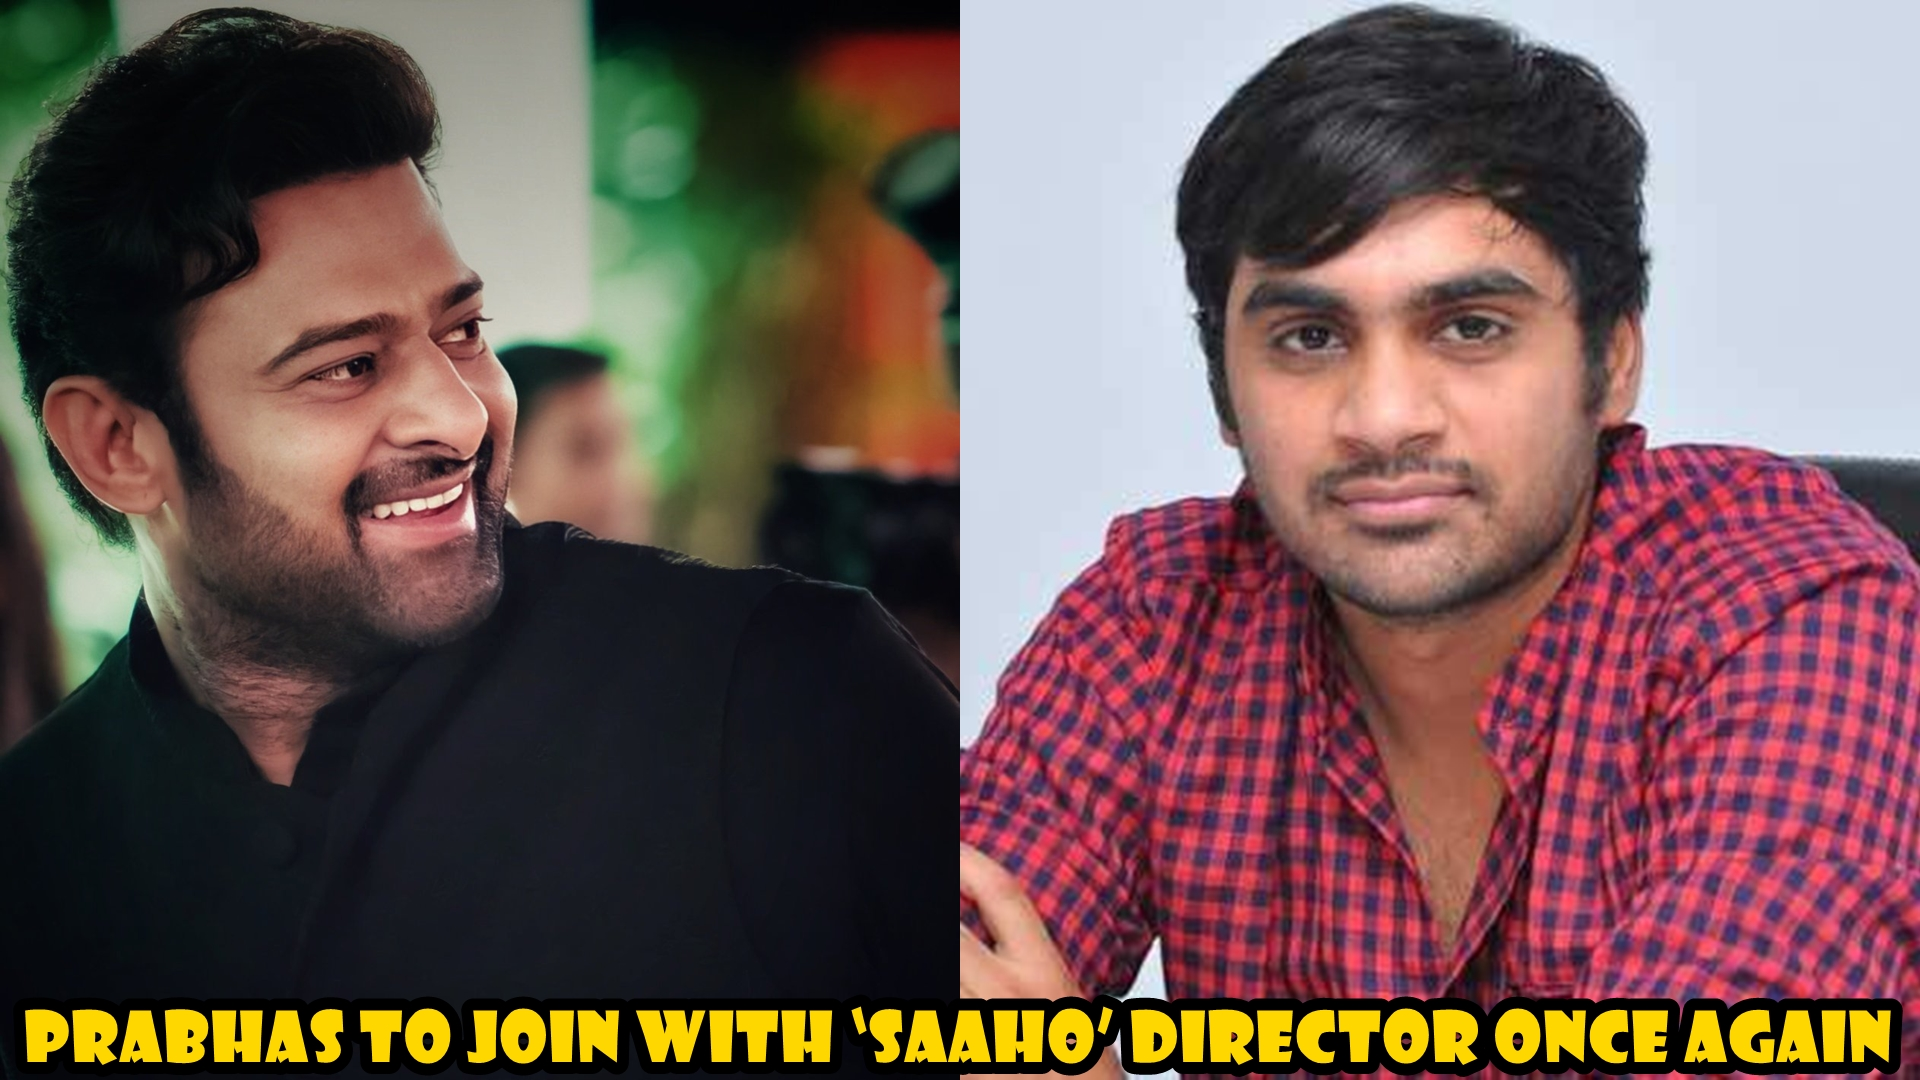 Prabhas to join with 'Saaho' director once Again